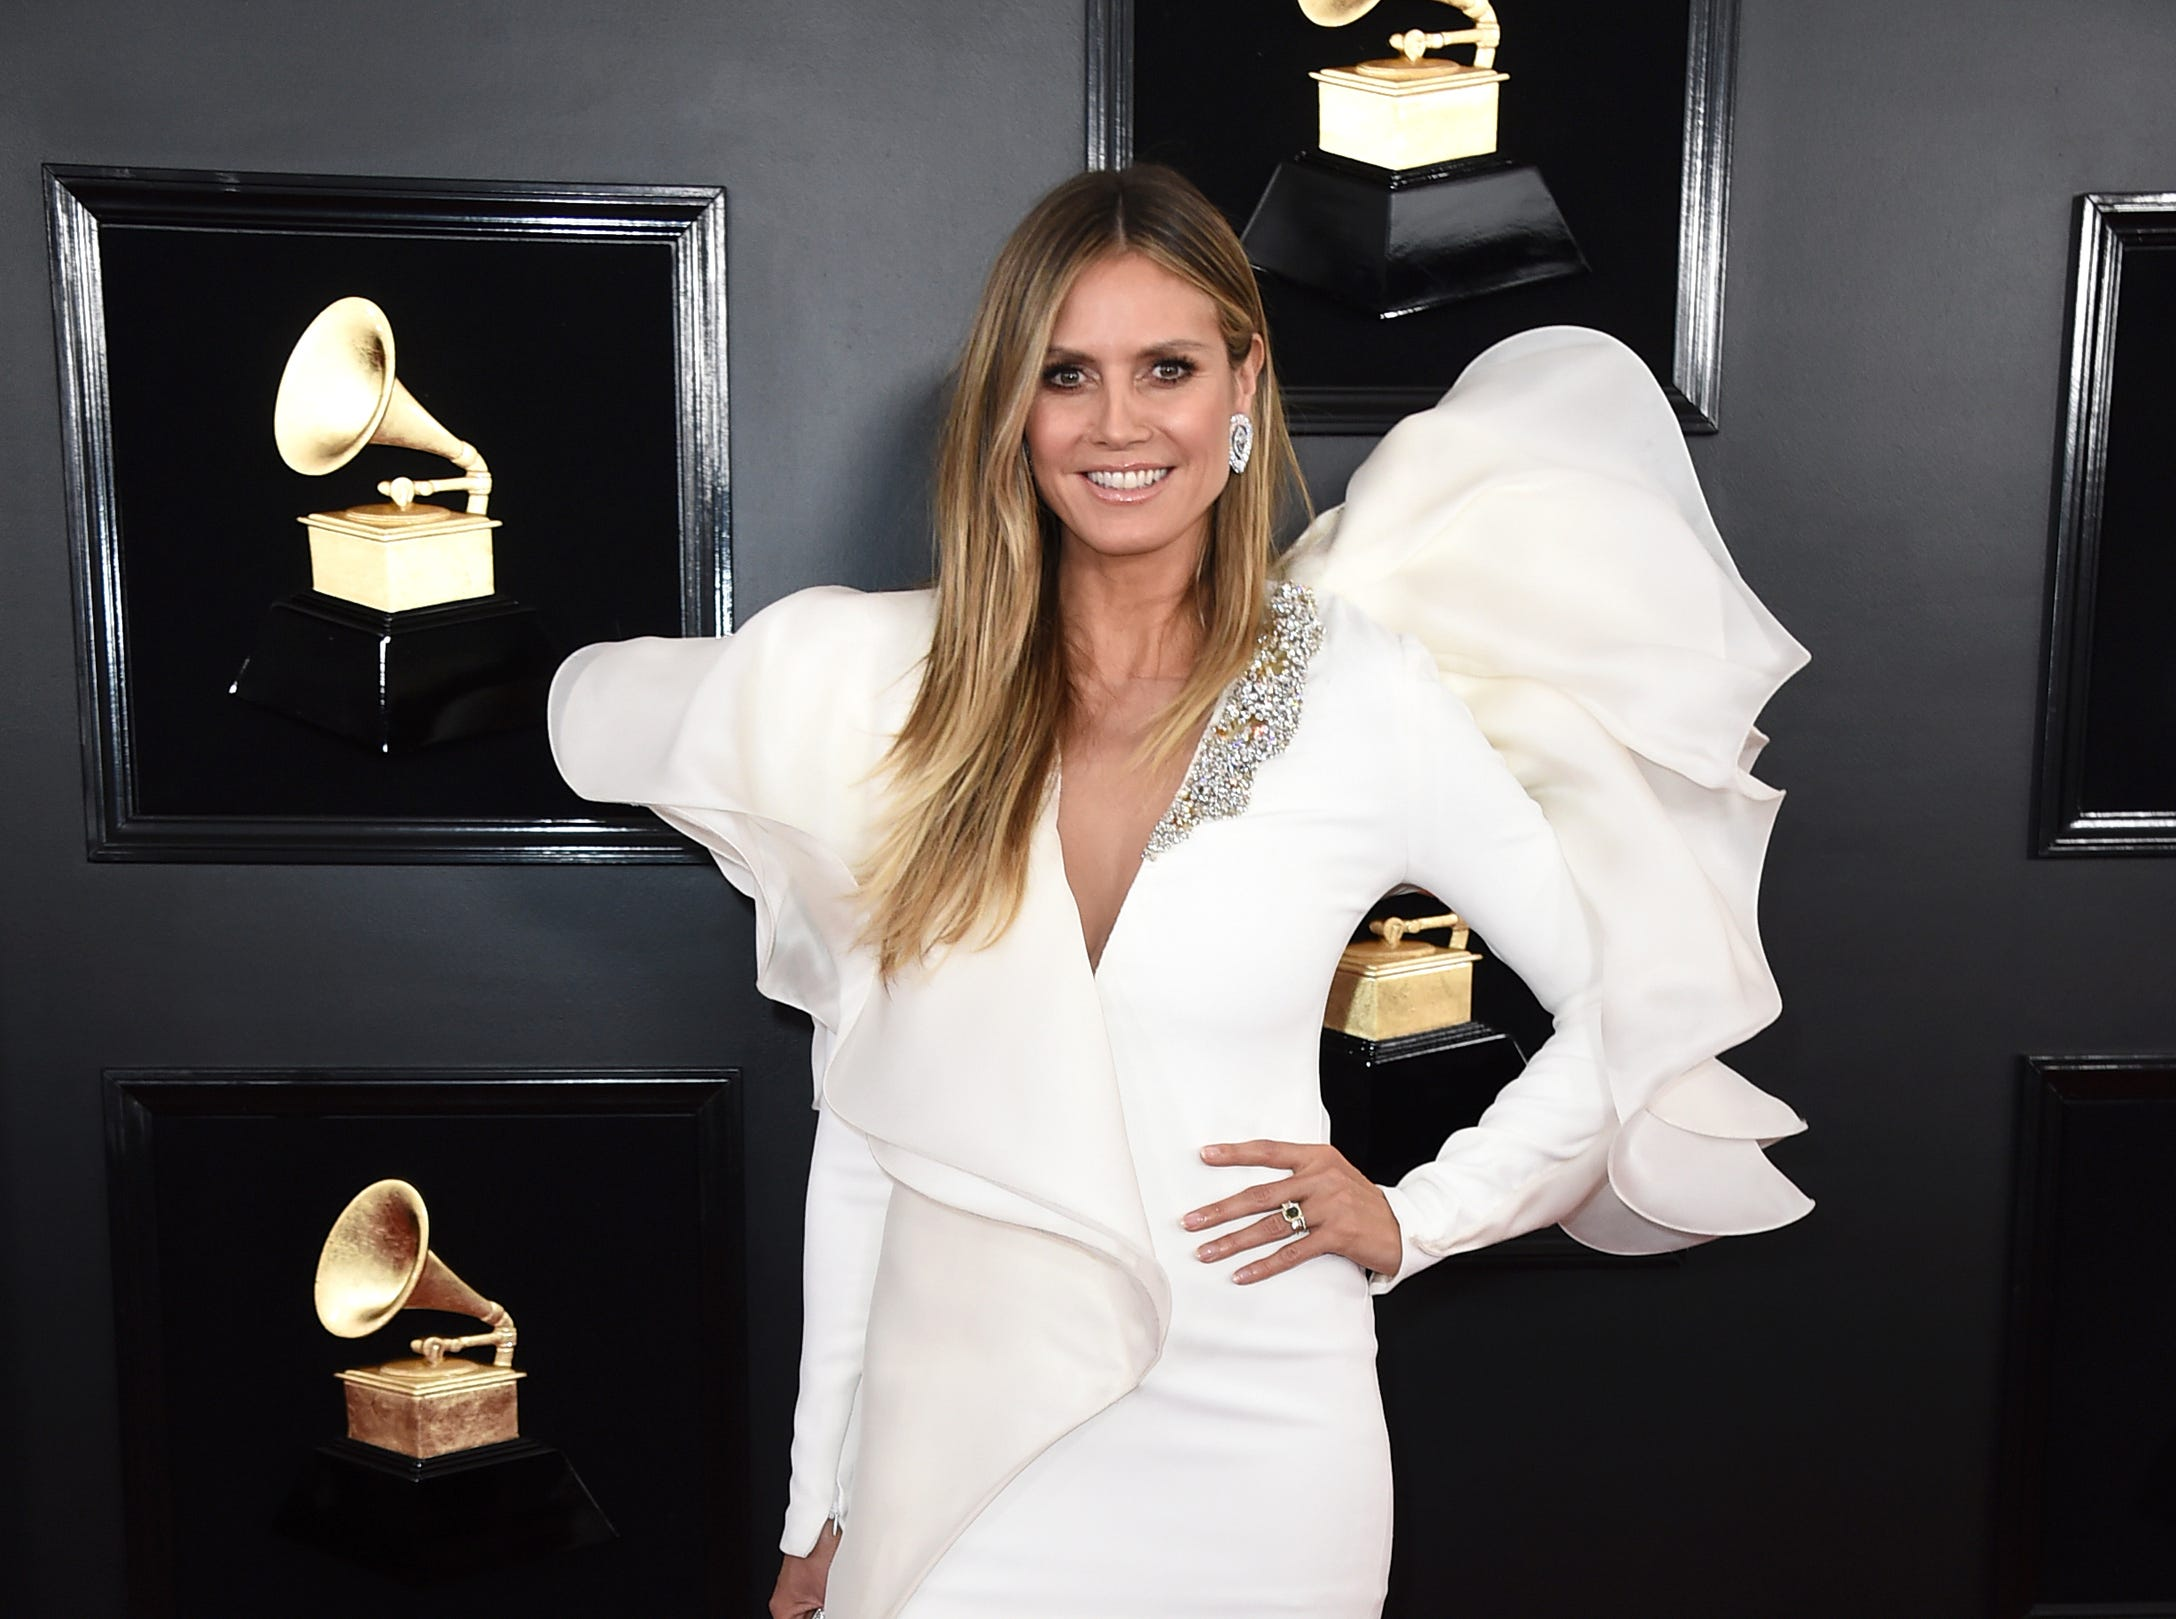 Heidi Klum arrives at the 61st annual Grammy Awards.